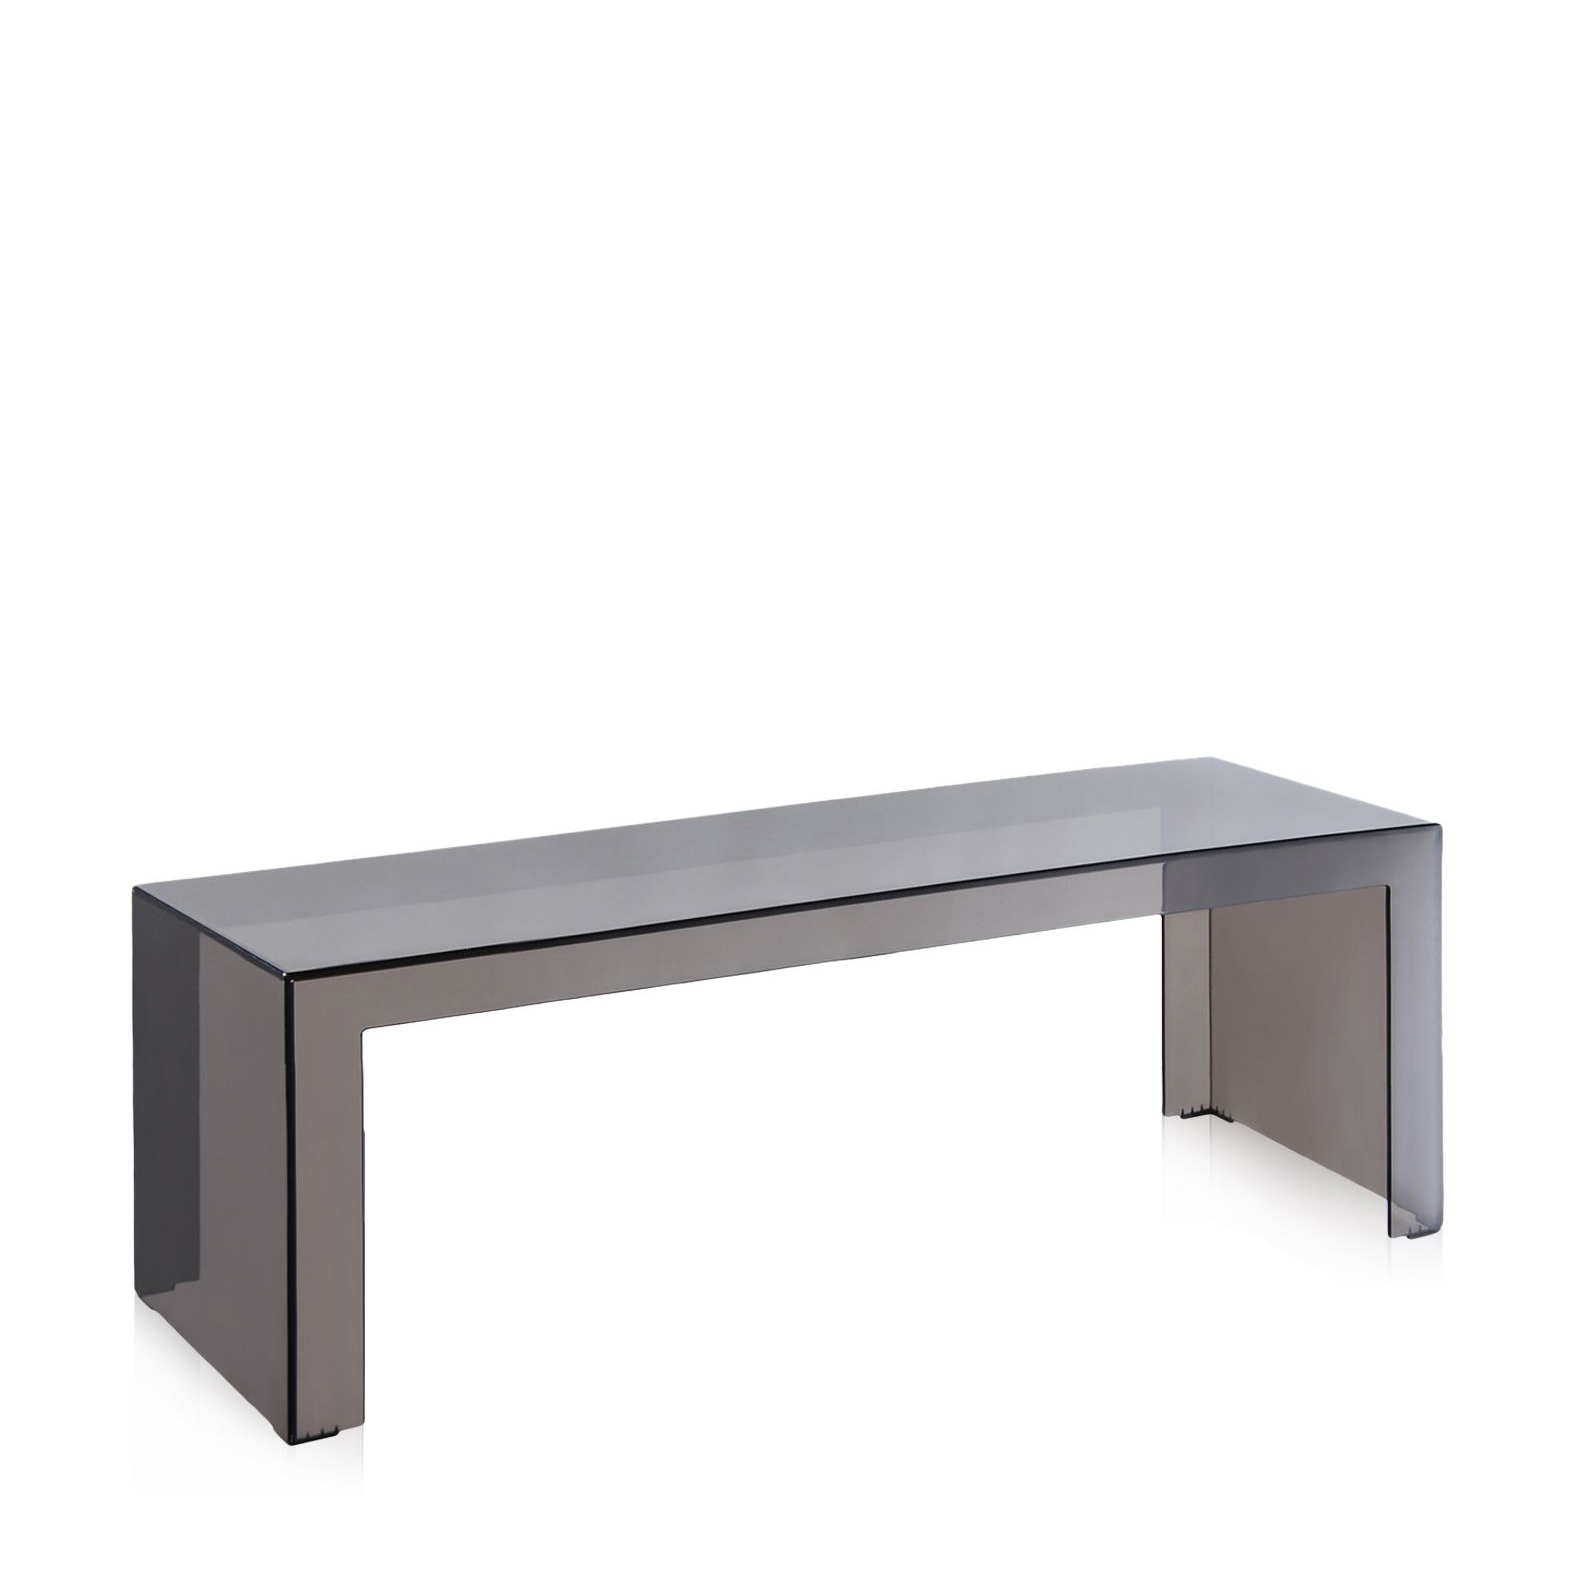 Buy Kartell Invisible long low Side table online from Connections